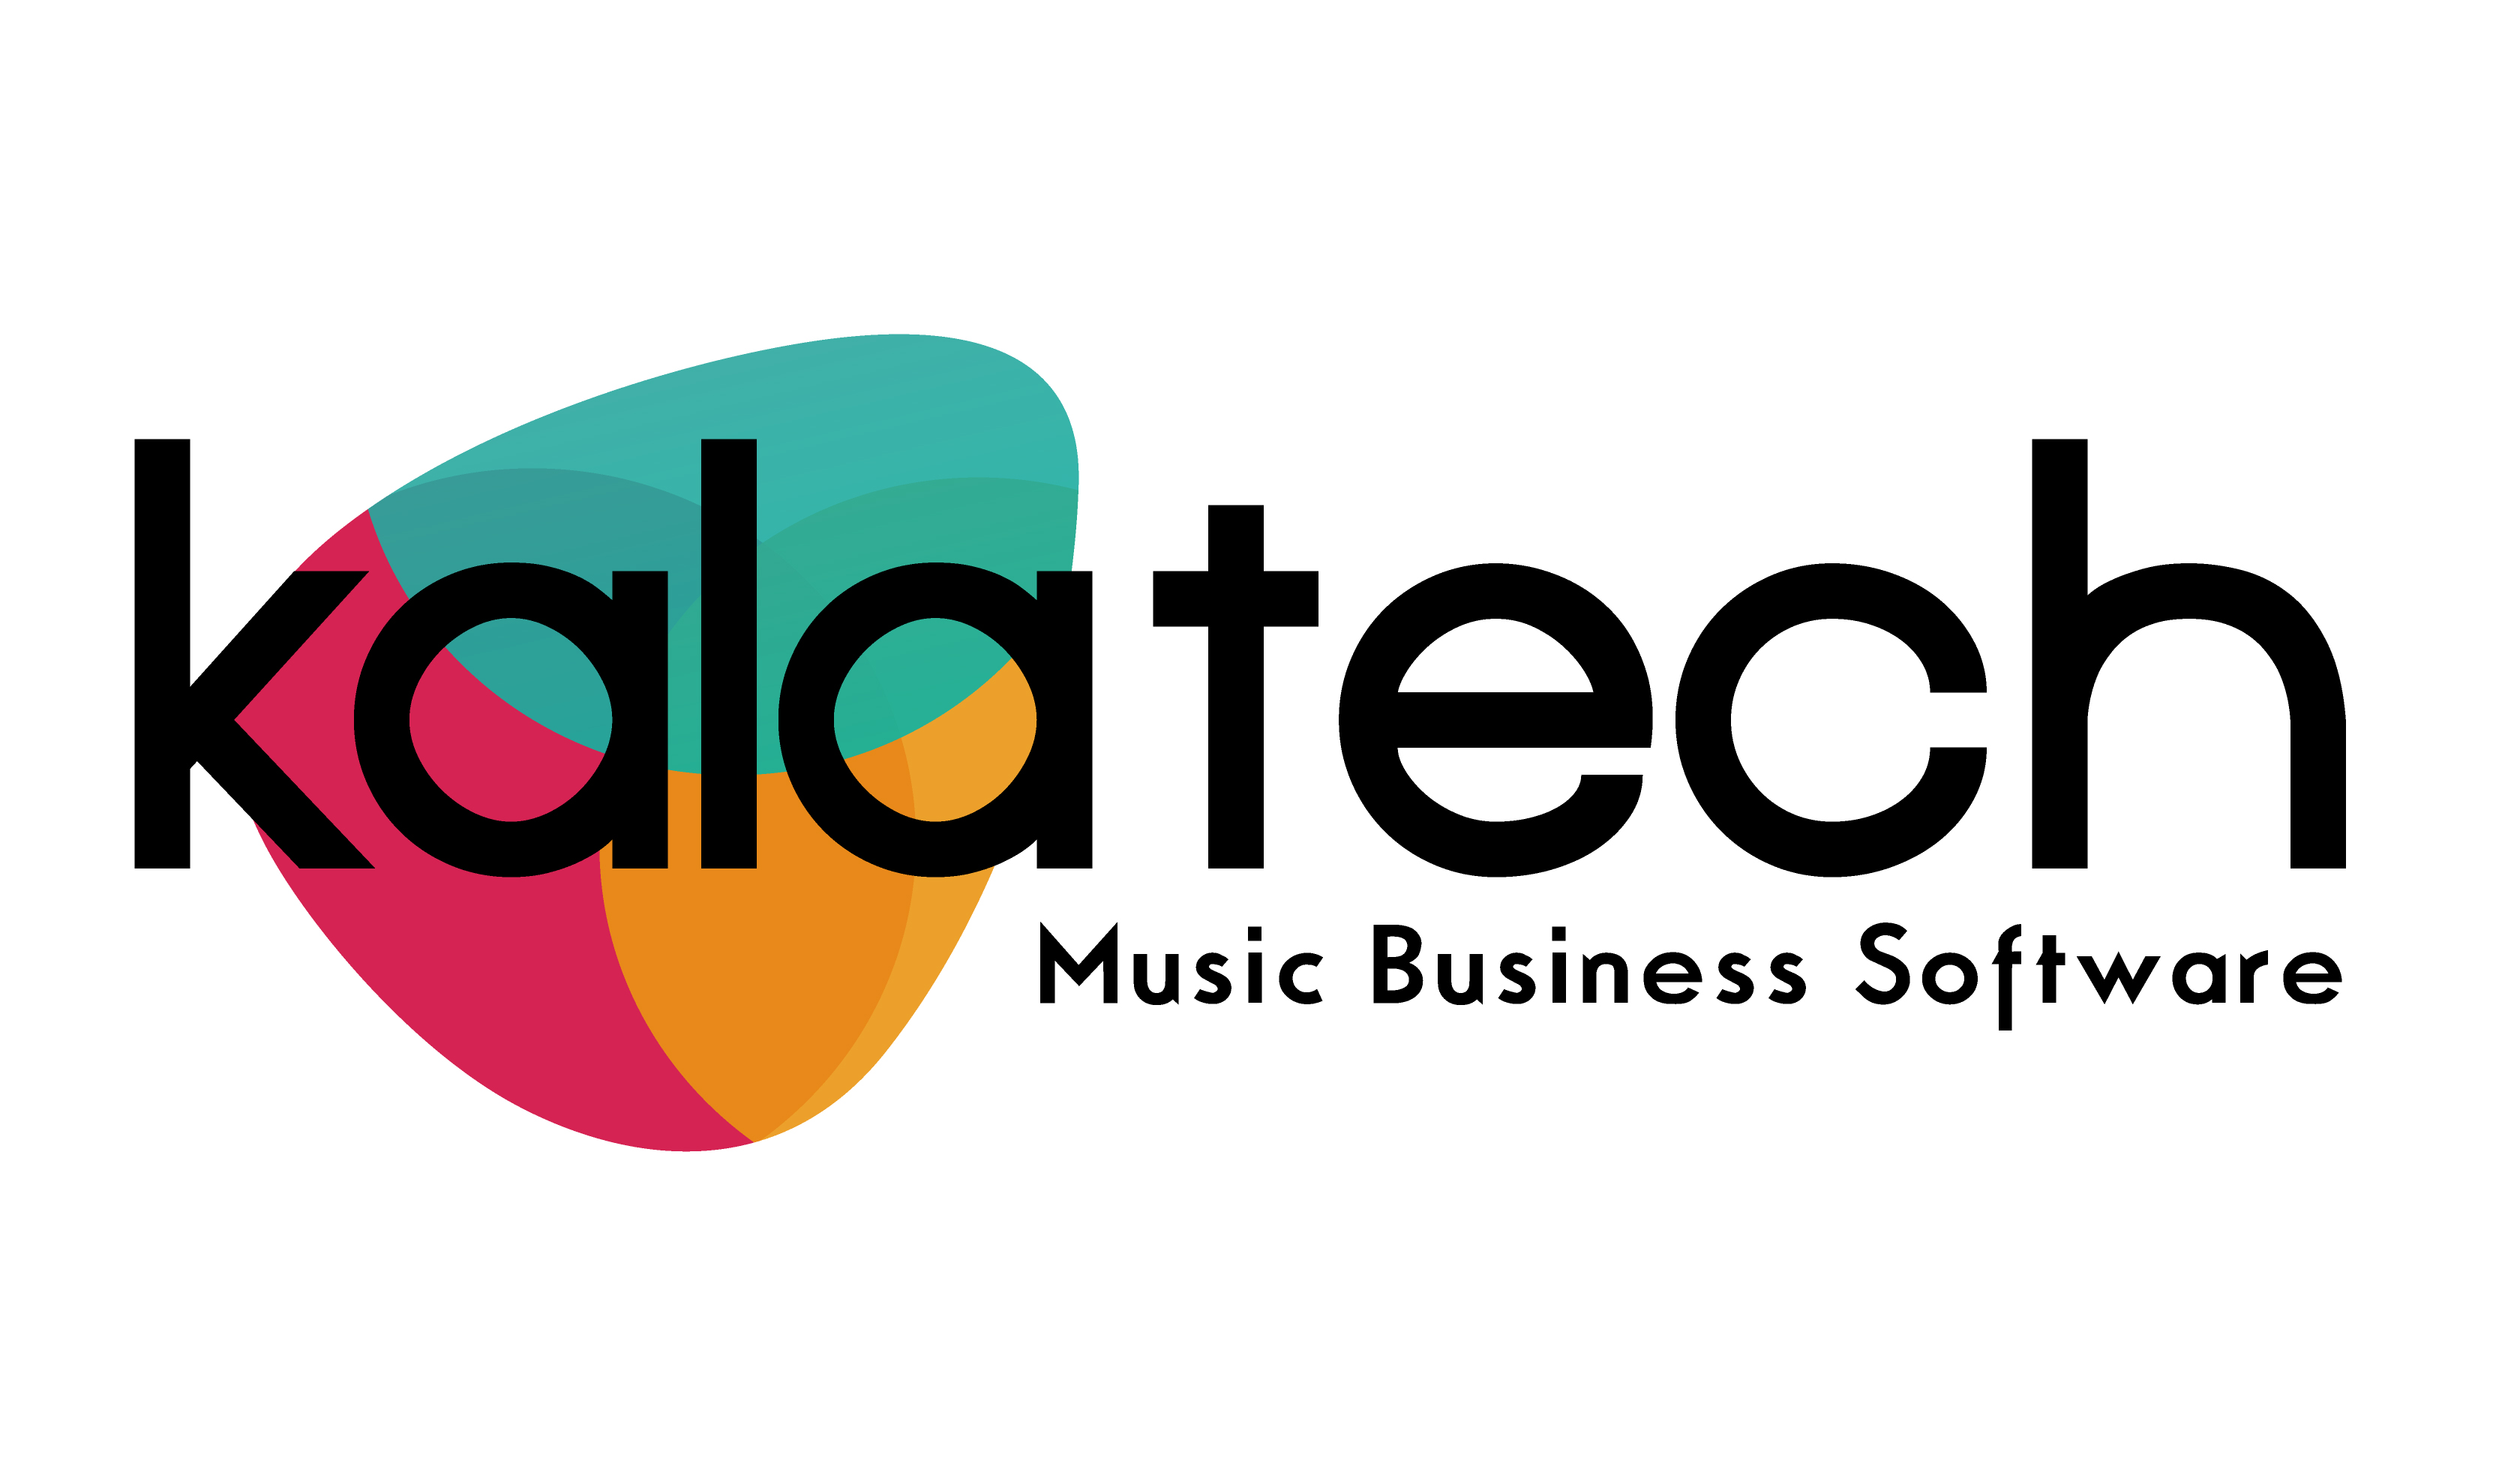 DevDigital launches Kalatech, its Music Business Software Division.